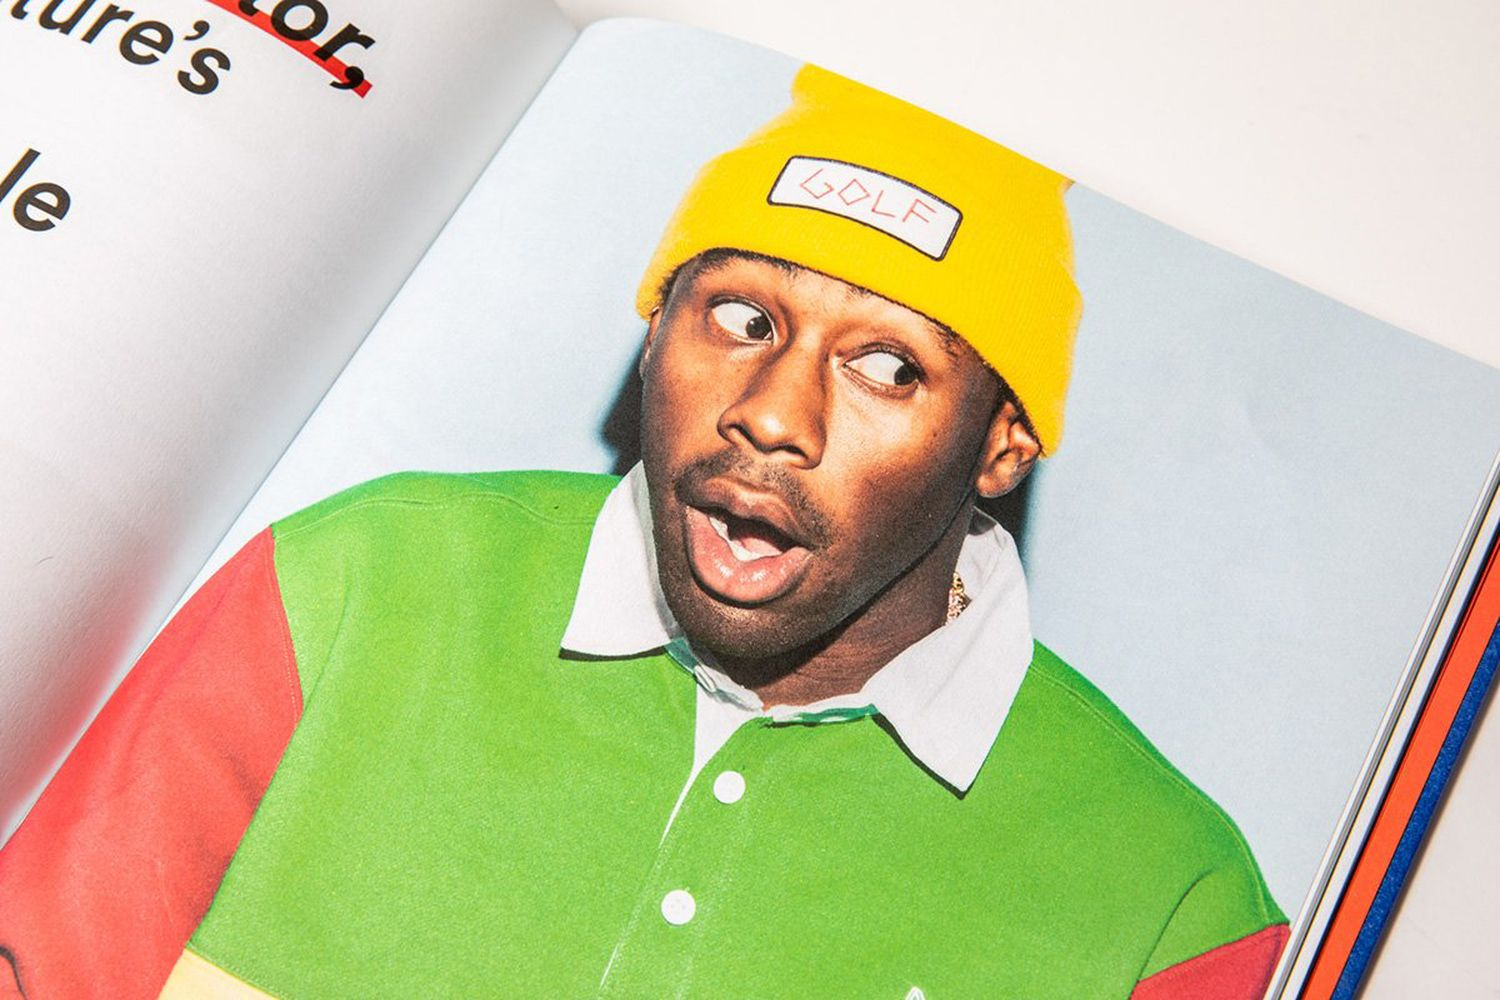 The Incomplete Highsnobiety Guide To Street Fashion & Culture